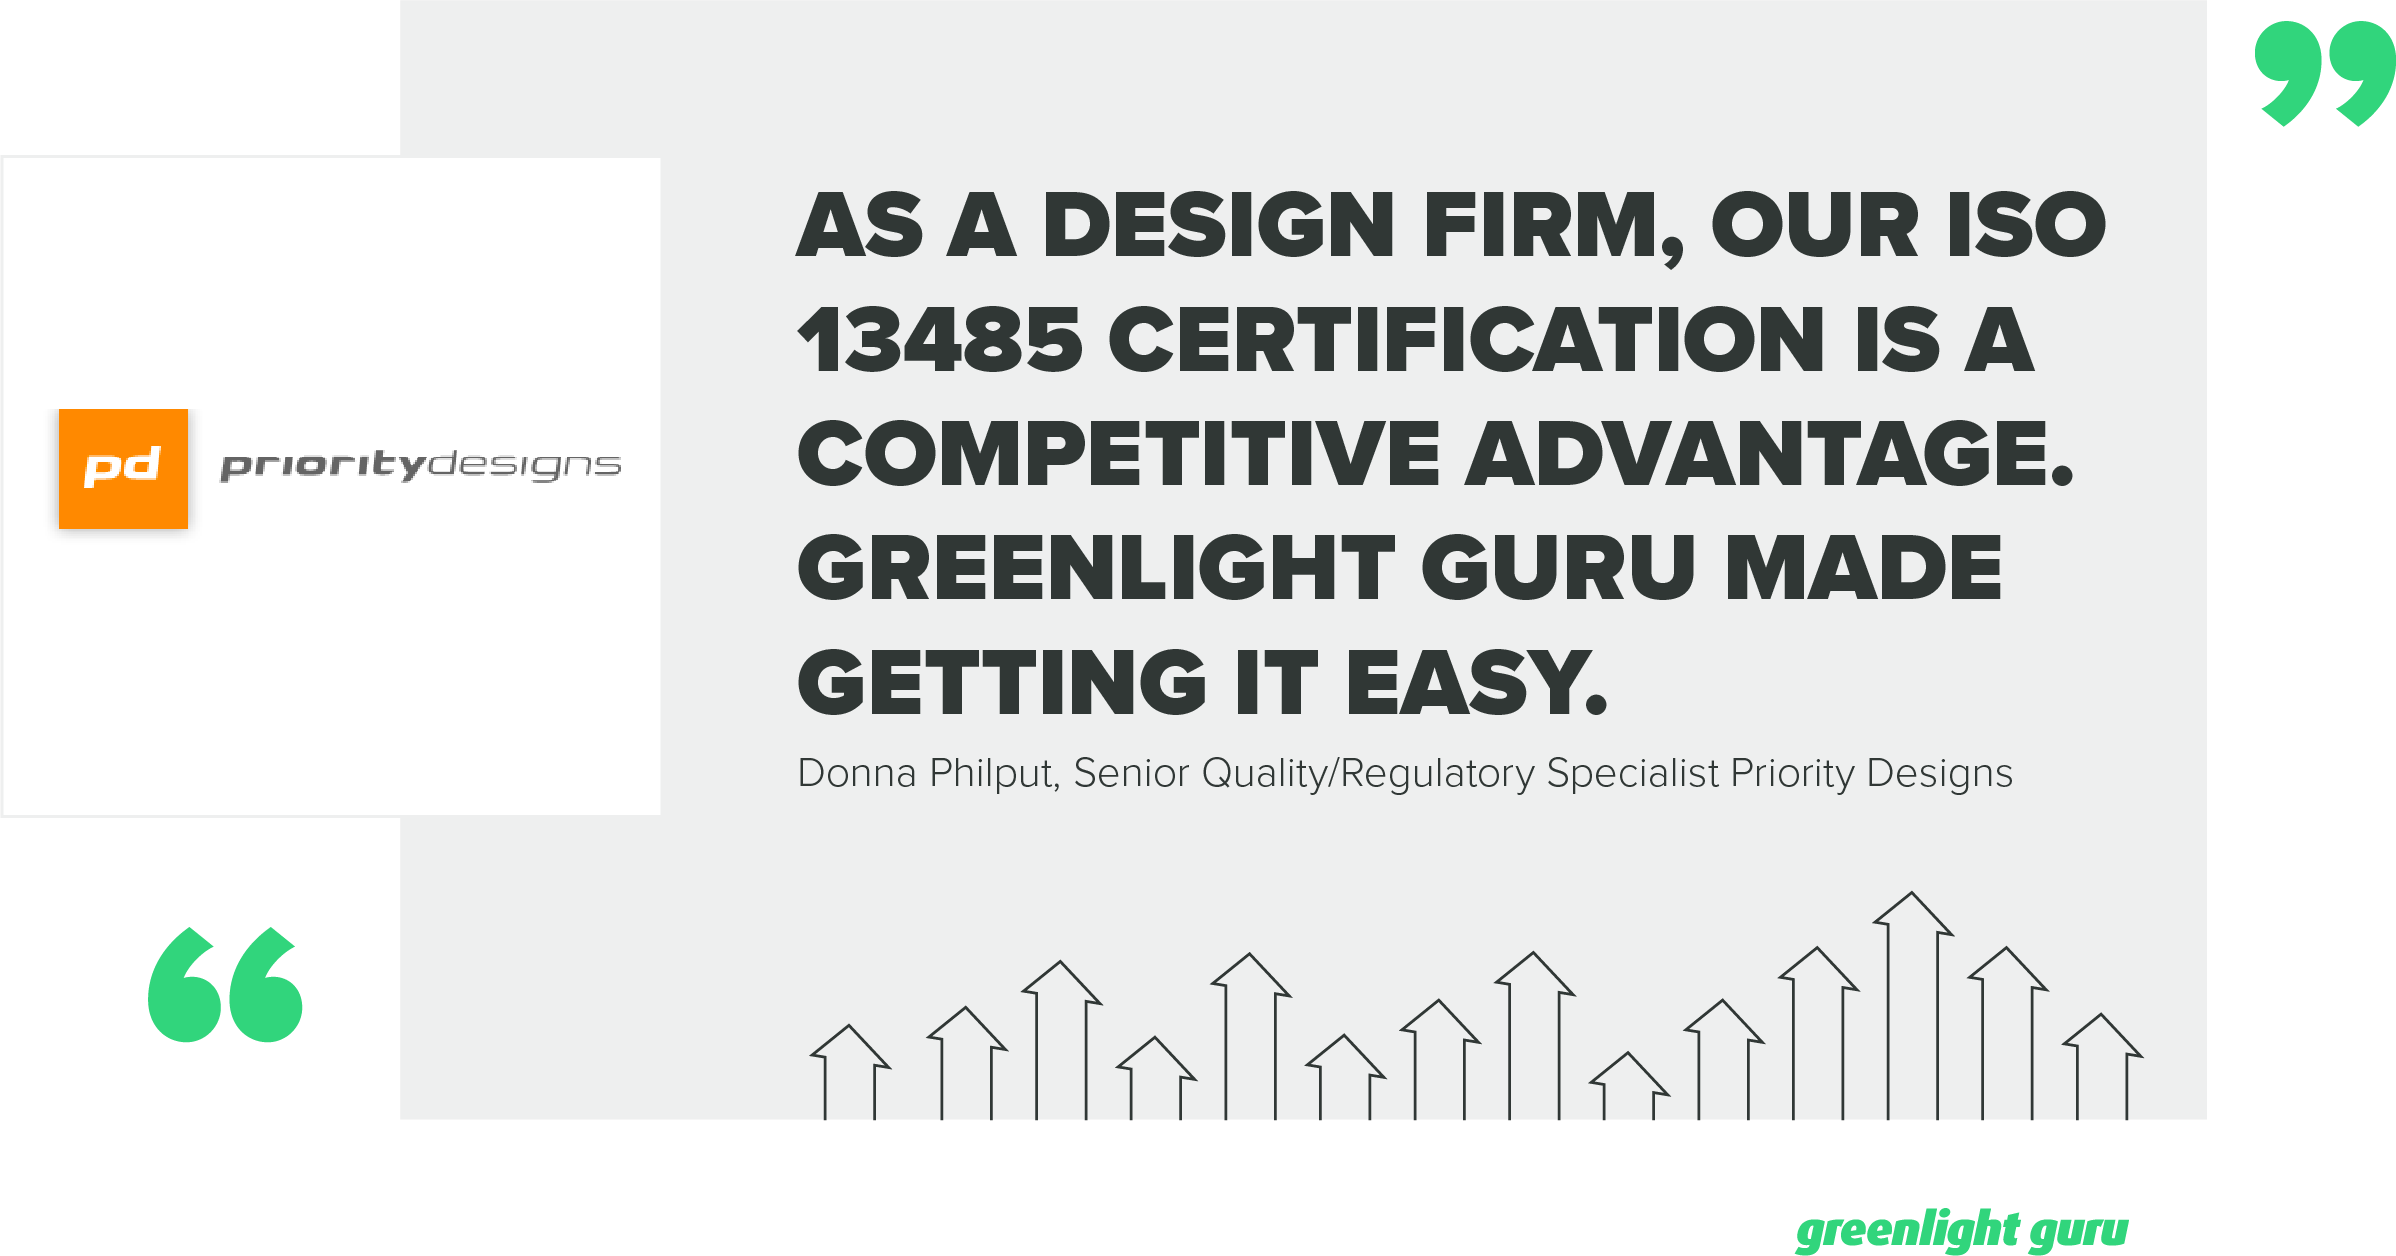 How Priority Designs Used Greenlight Guru to Gain ISO 13485:2016 Certification - Featured Image